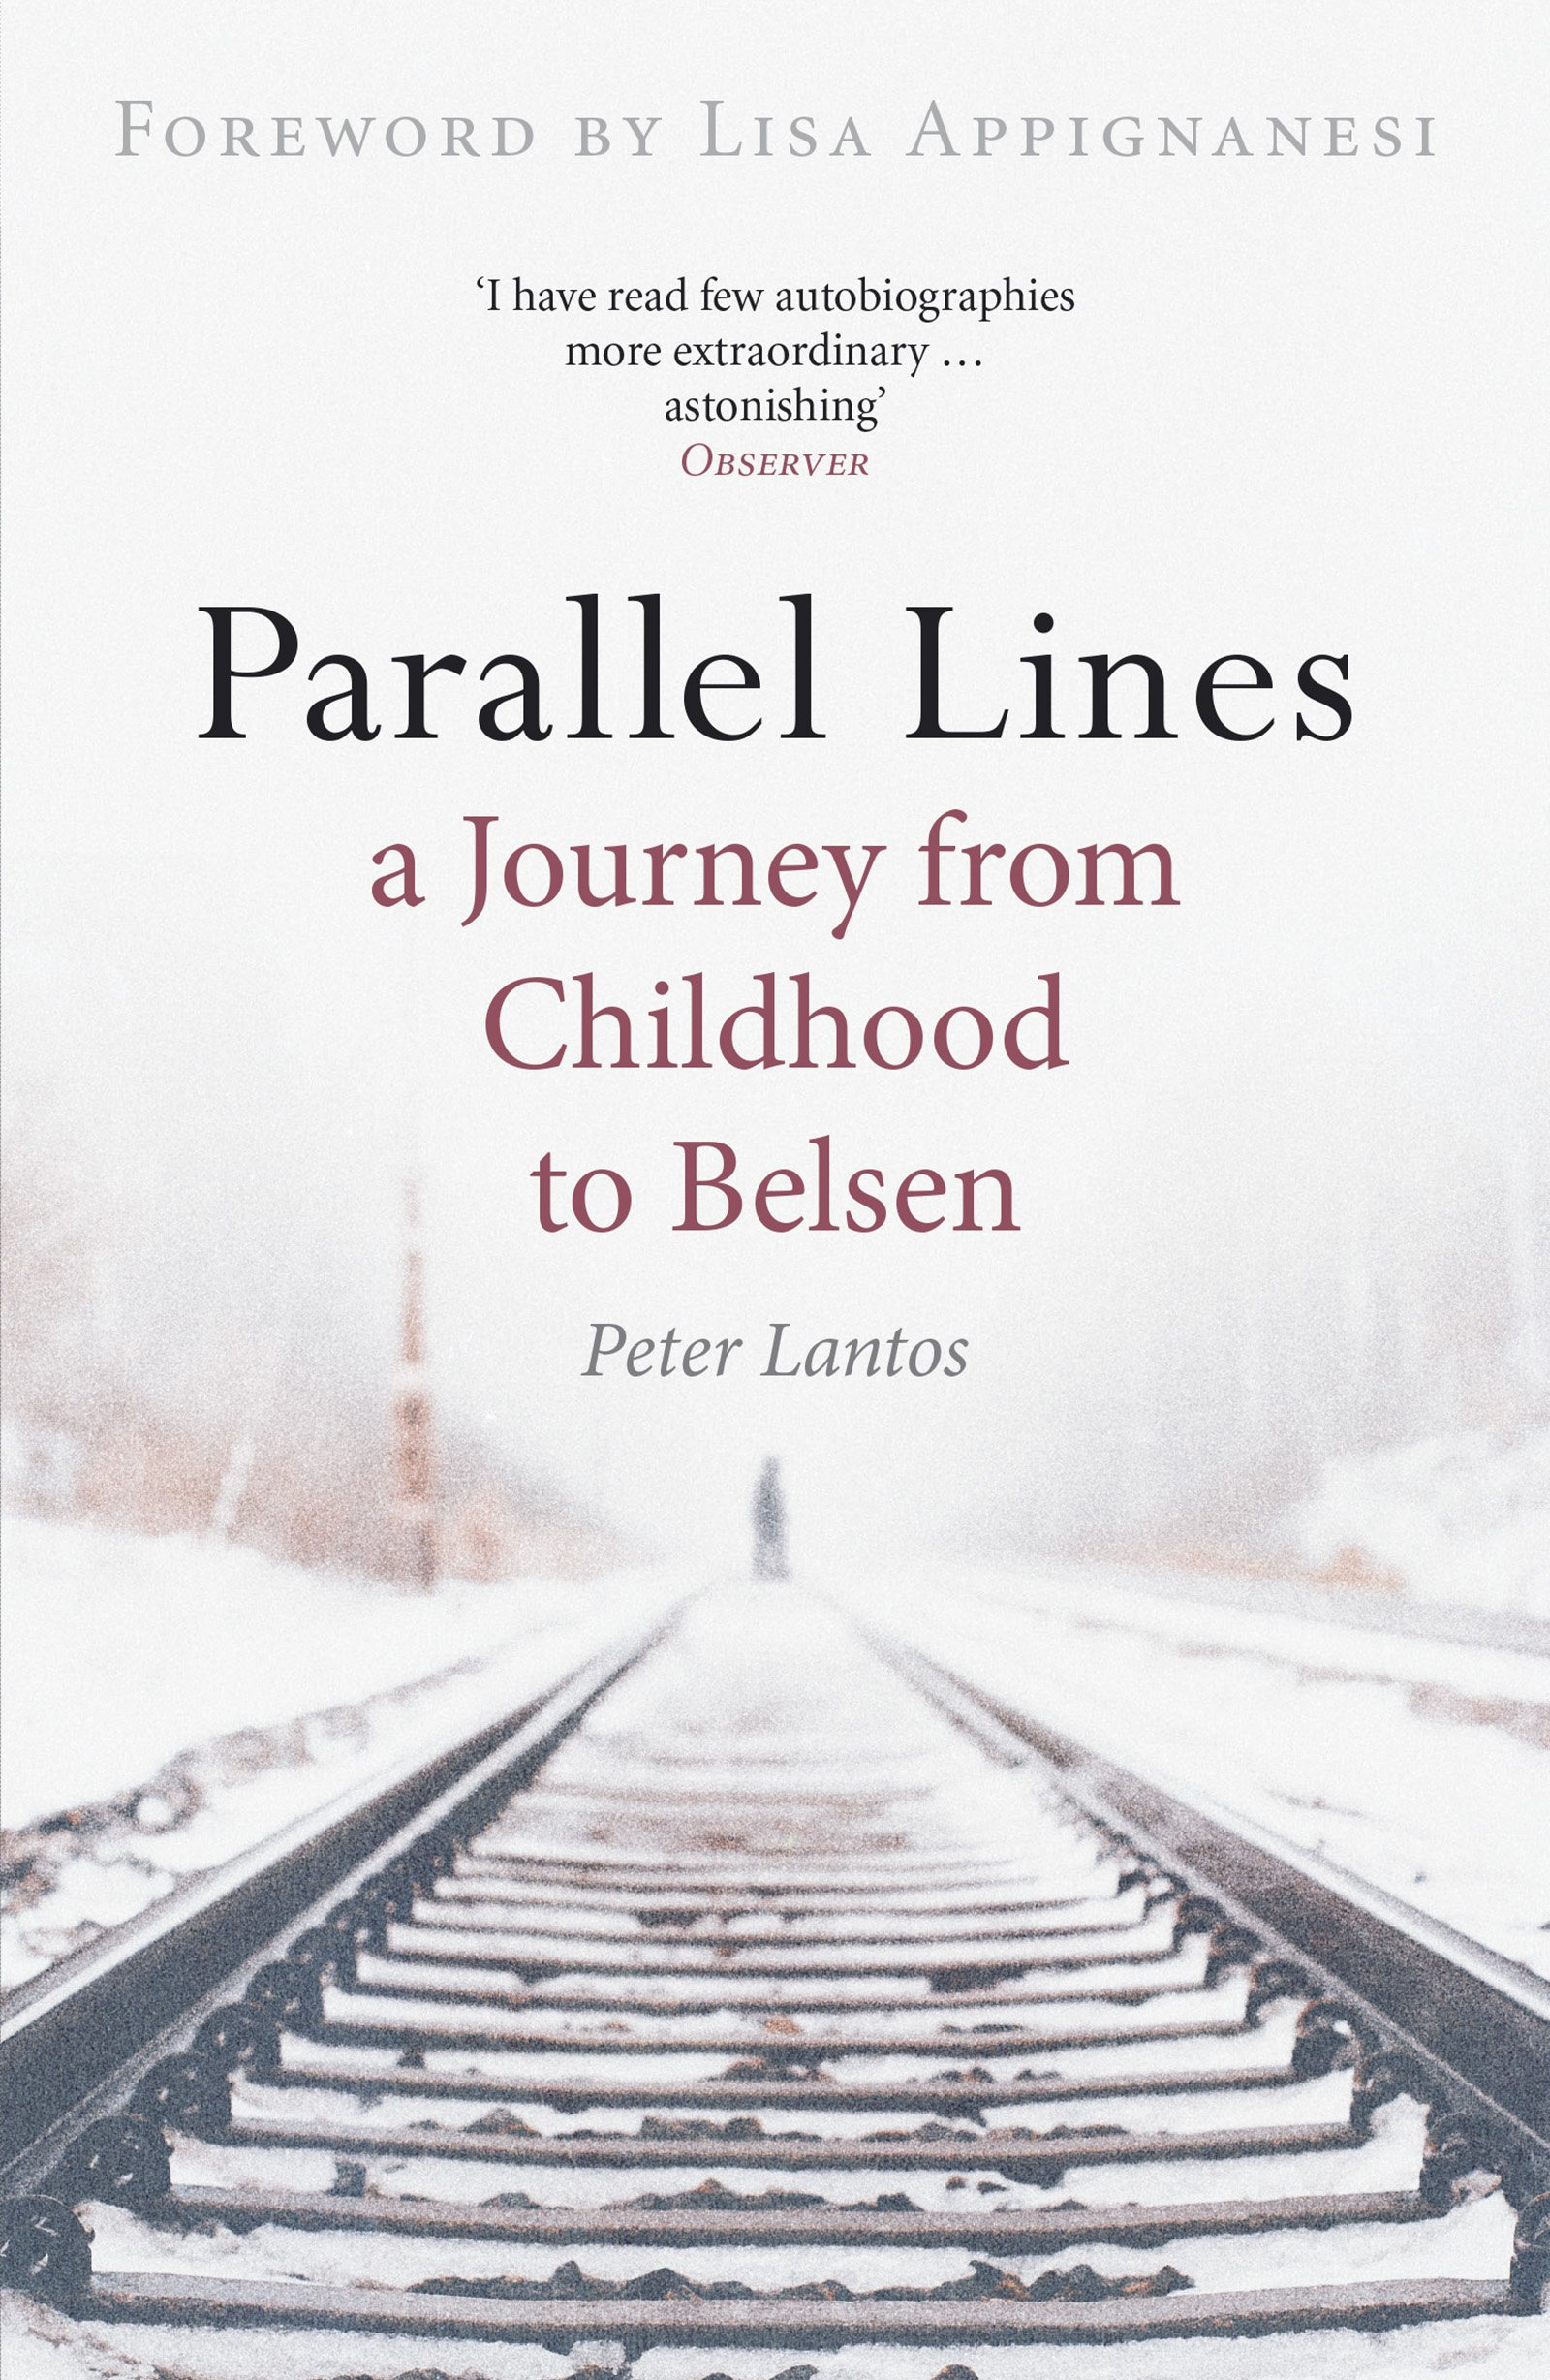 Parallel Lines: A Journey from Childhood to Belsen